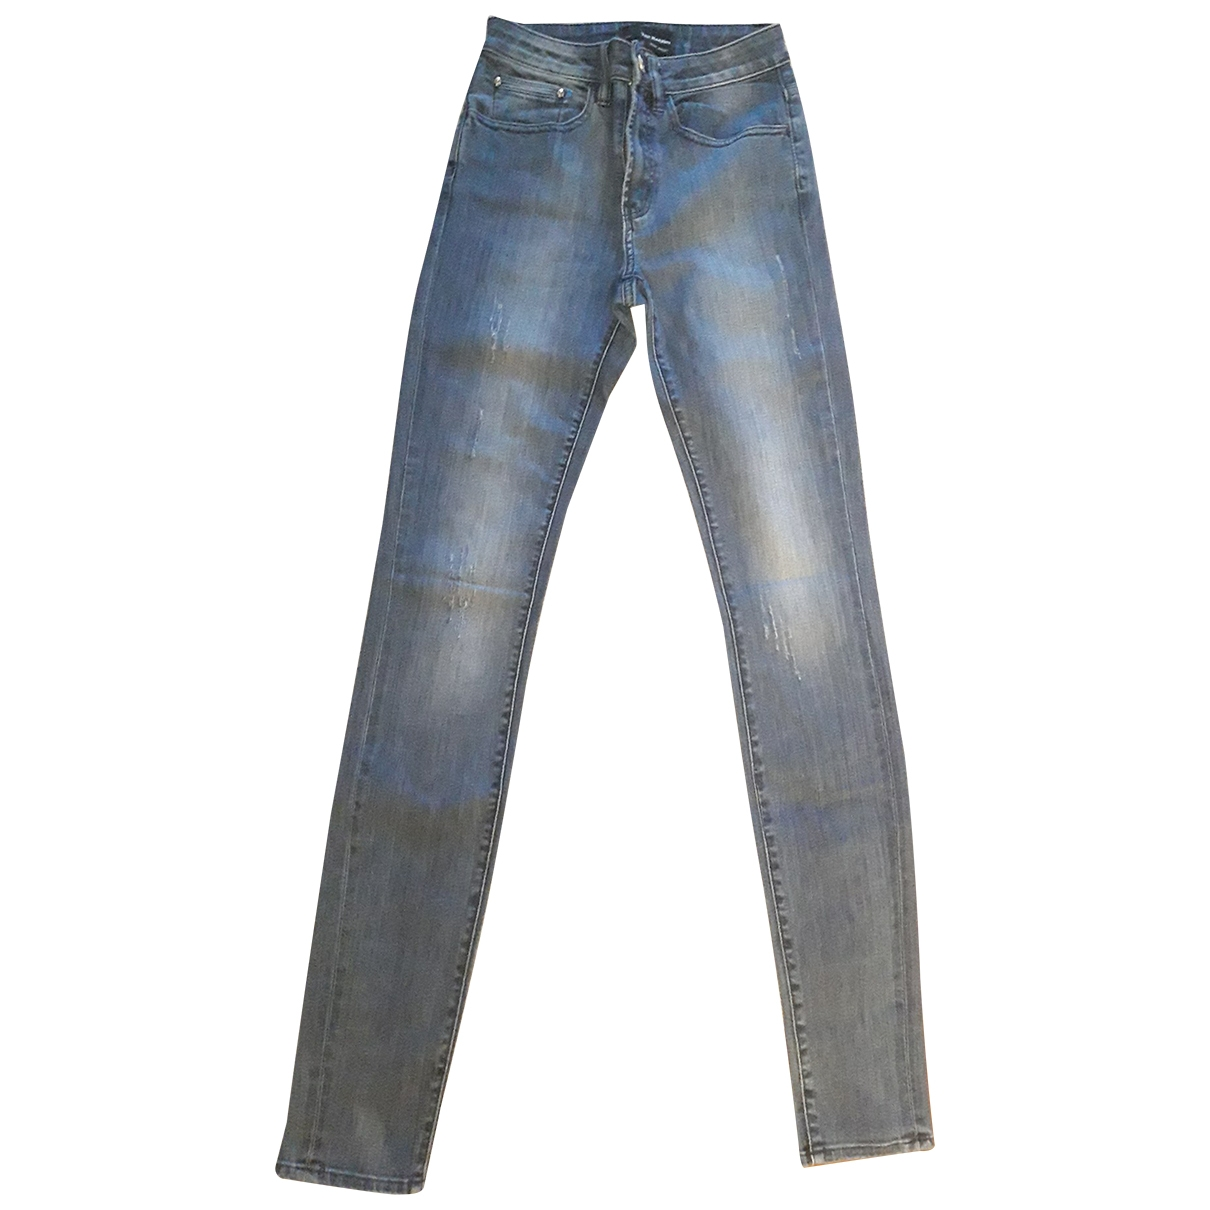 The Kooples Fall Winter 2019 Blue Cotton - elasthane Jeans for Women 24 US